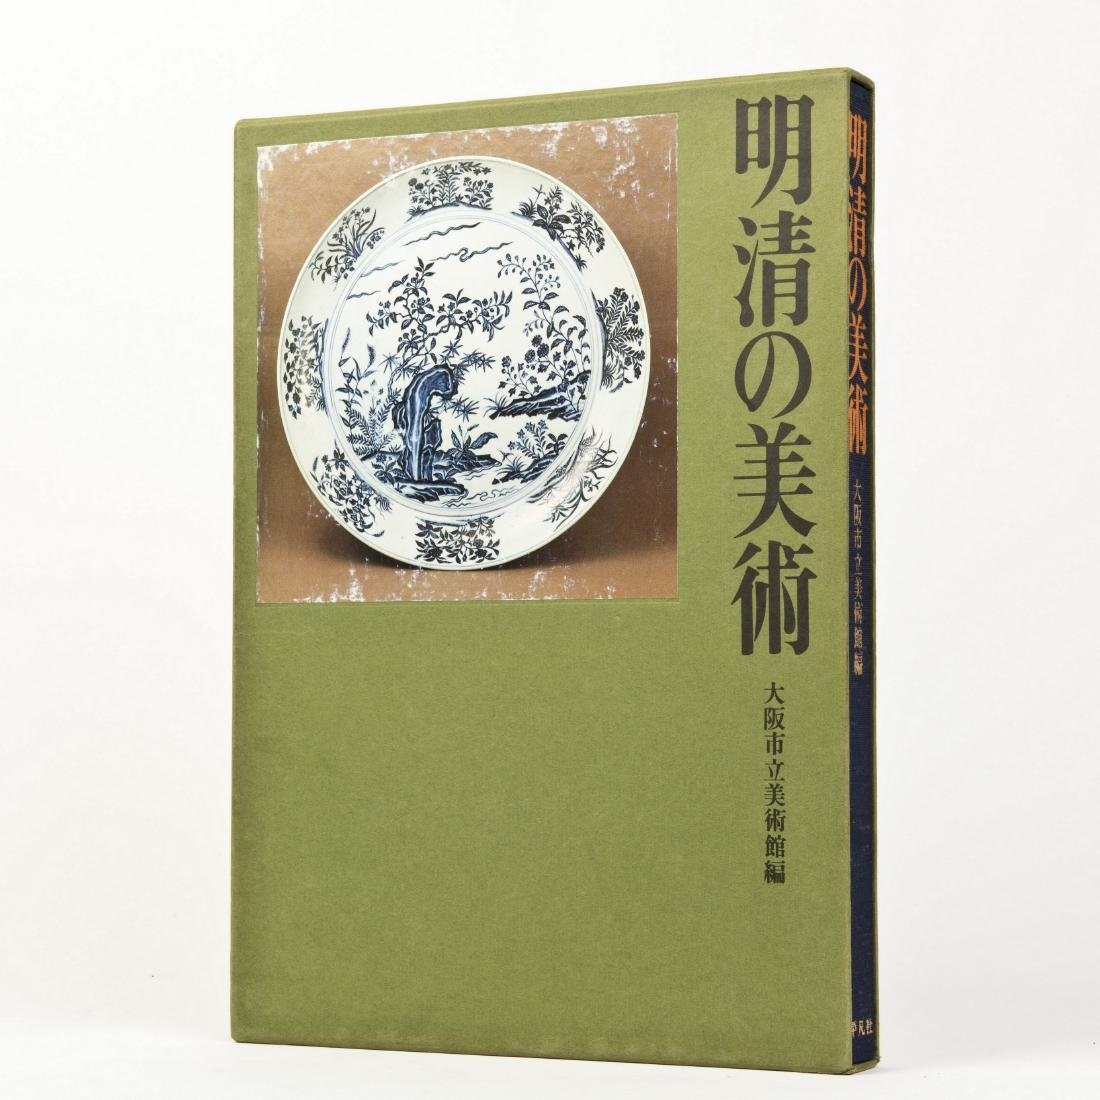 A BOOK OF THE ART OF MING AND QING DYNASTY